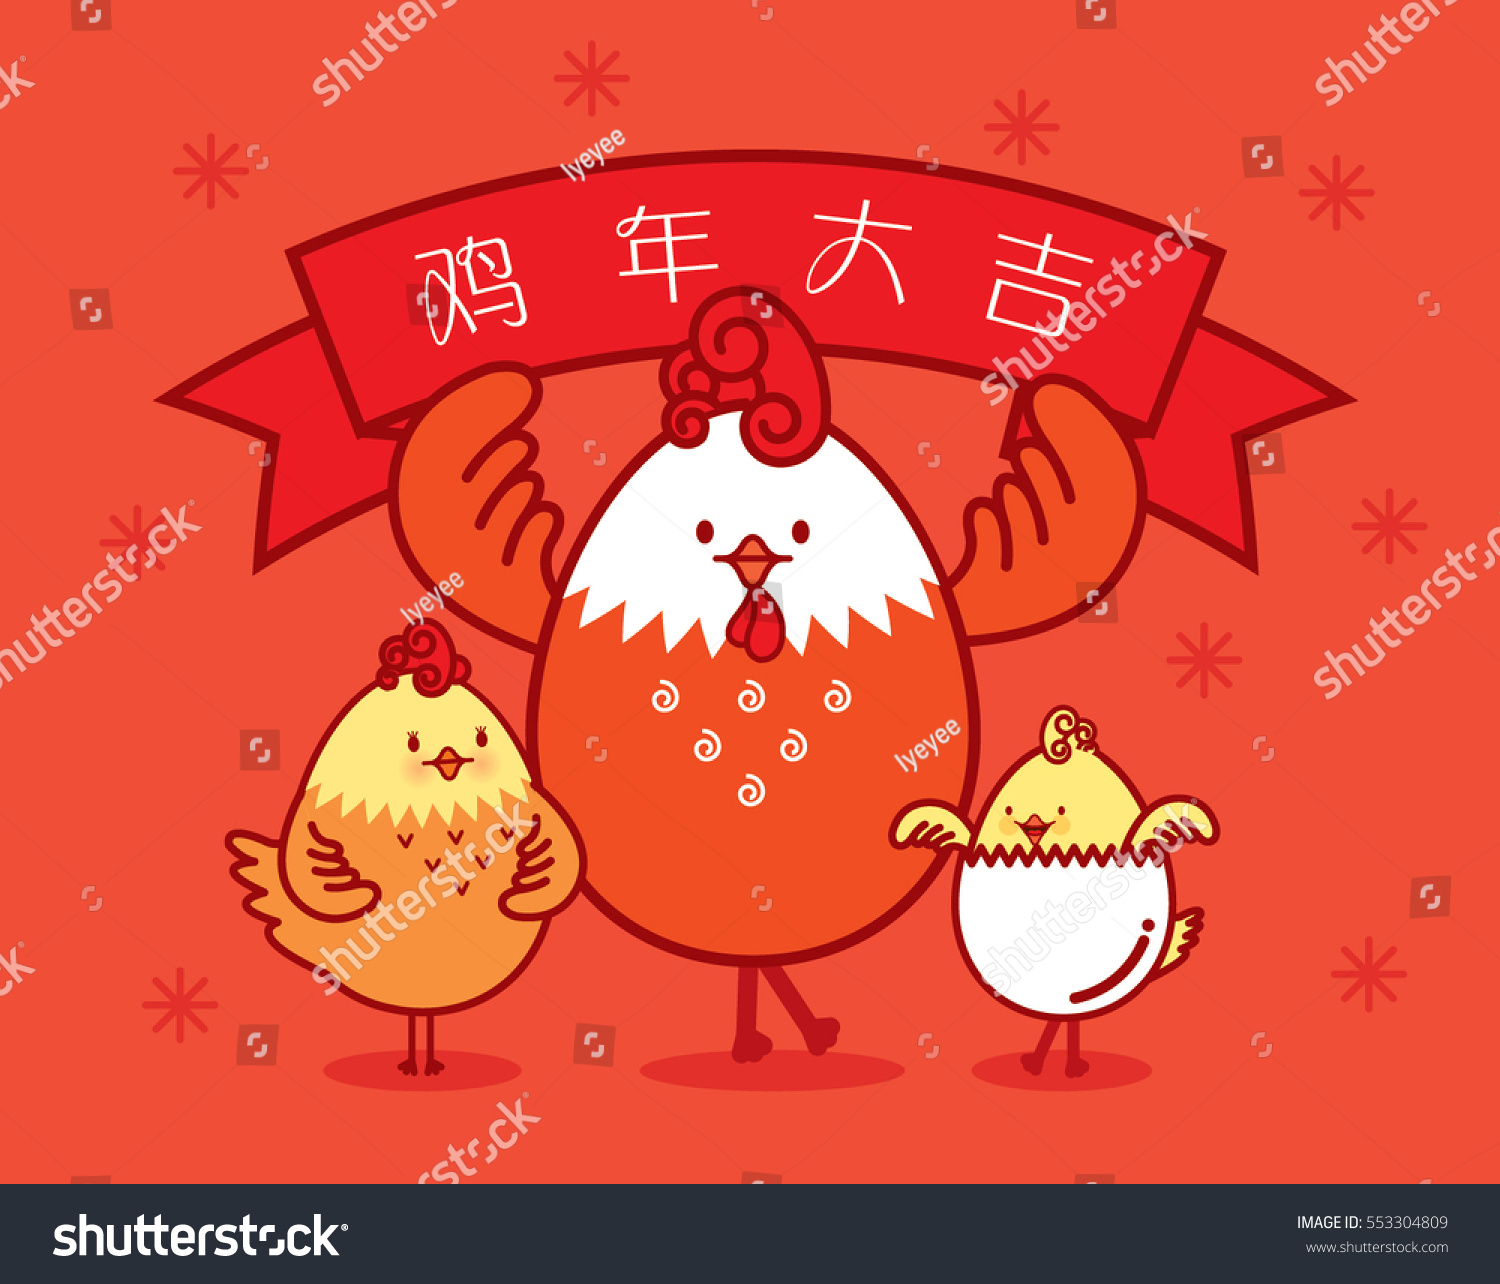 Chinese new year rooster greetings template stock vector 553304809 chinese new year of the rooster greetings template with chinese characters that mean wishing you luck m4hsunfo